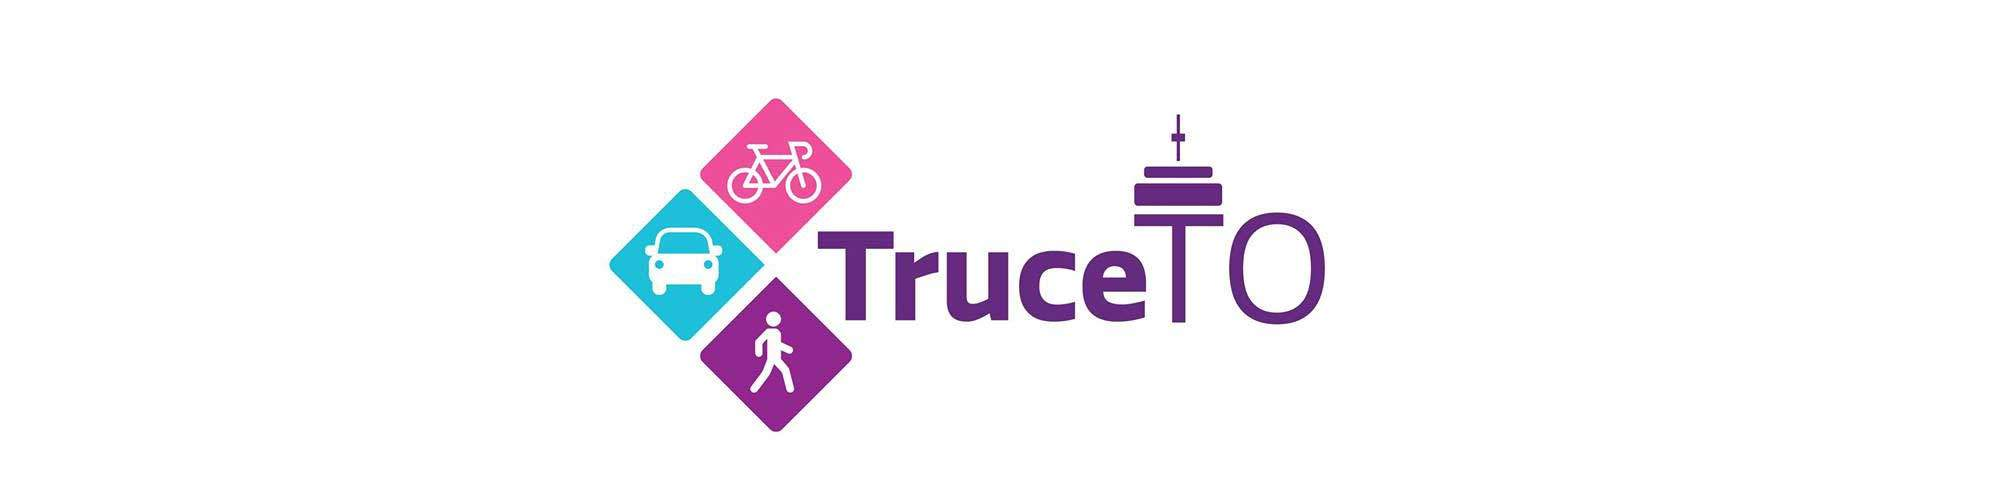 TruceTO Road Safety Campaign Launched in Toronto